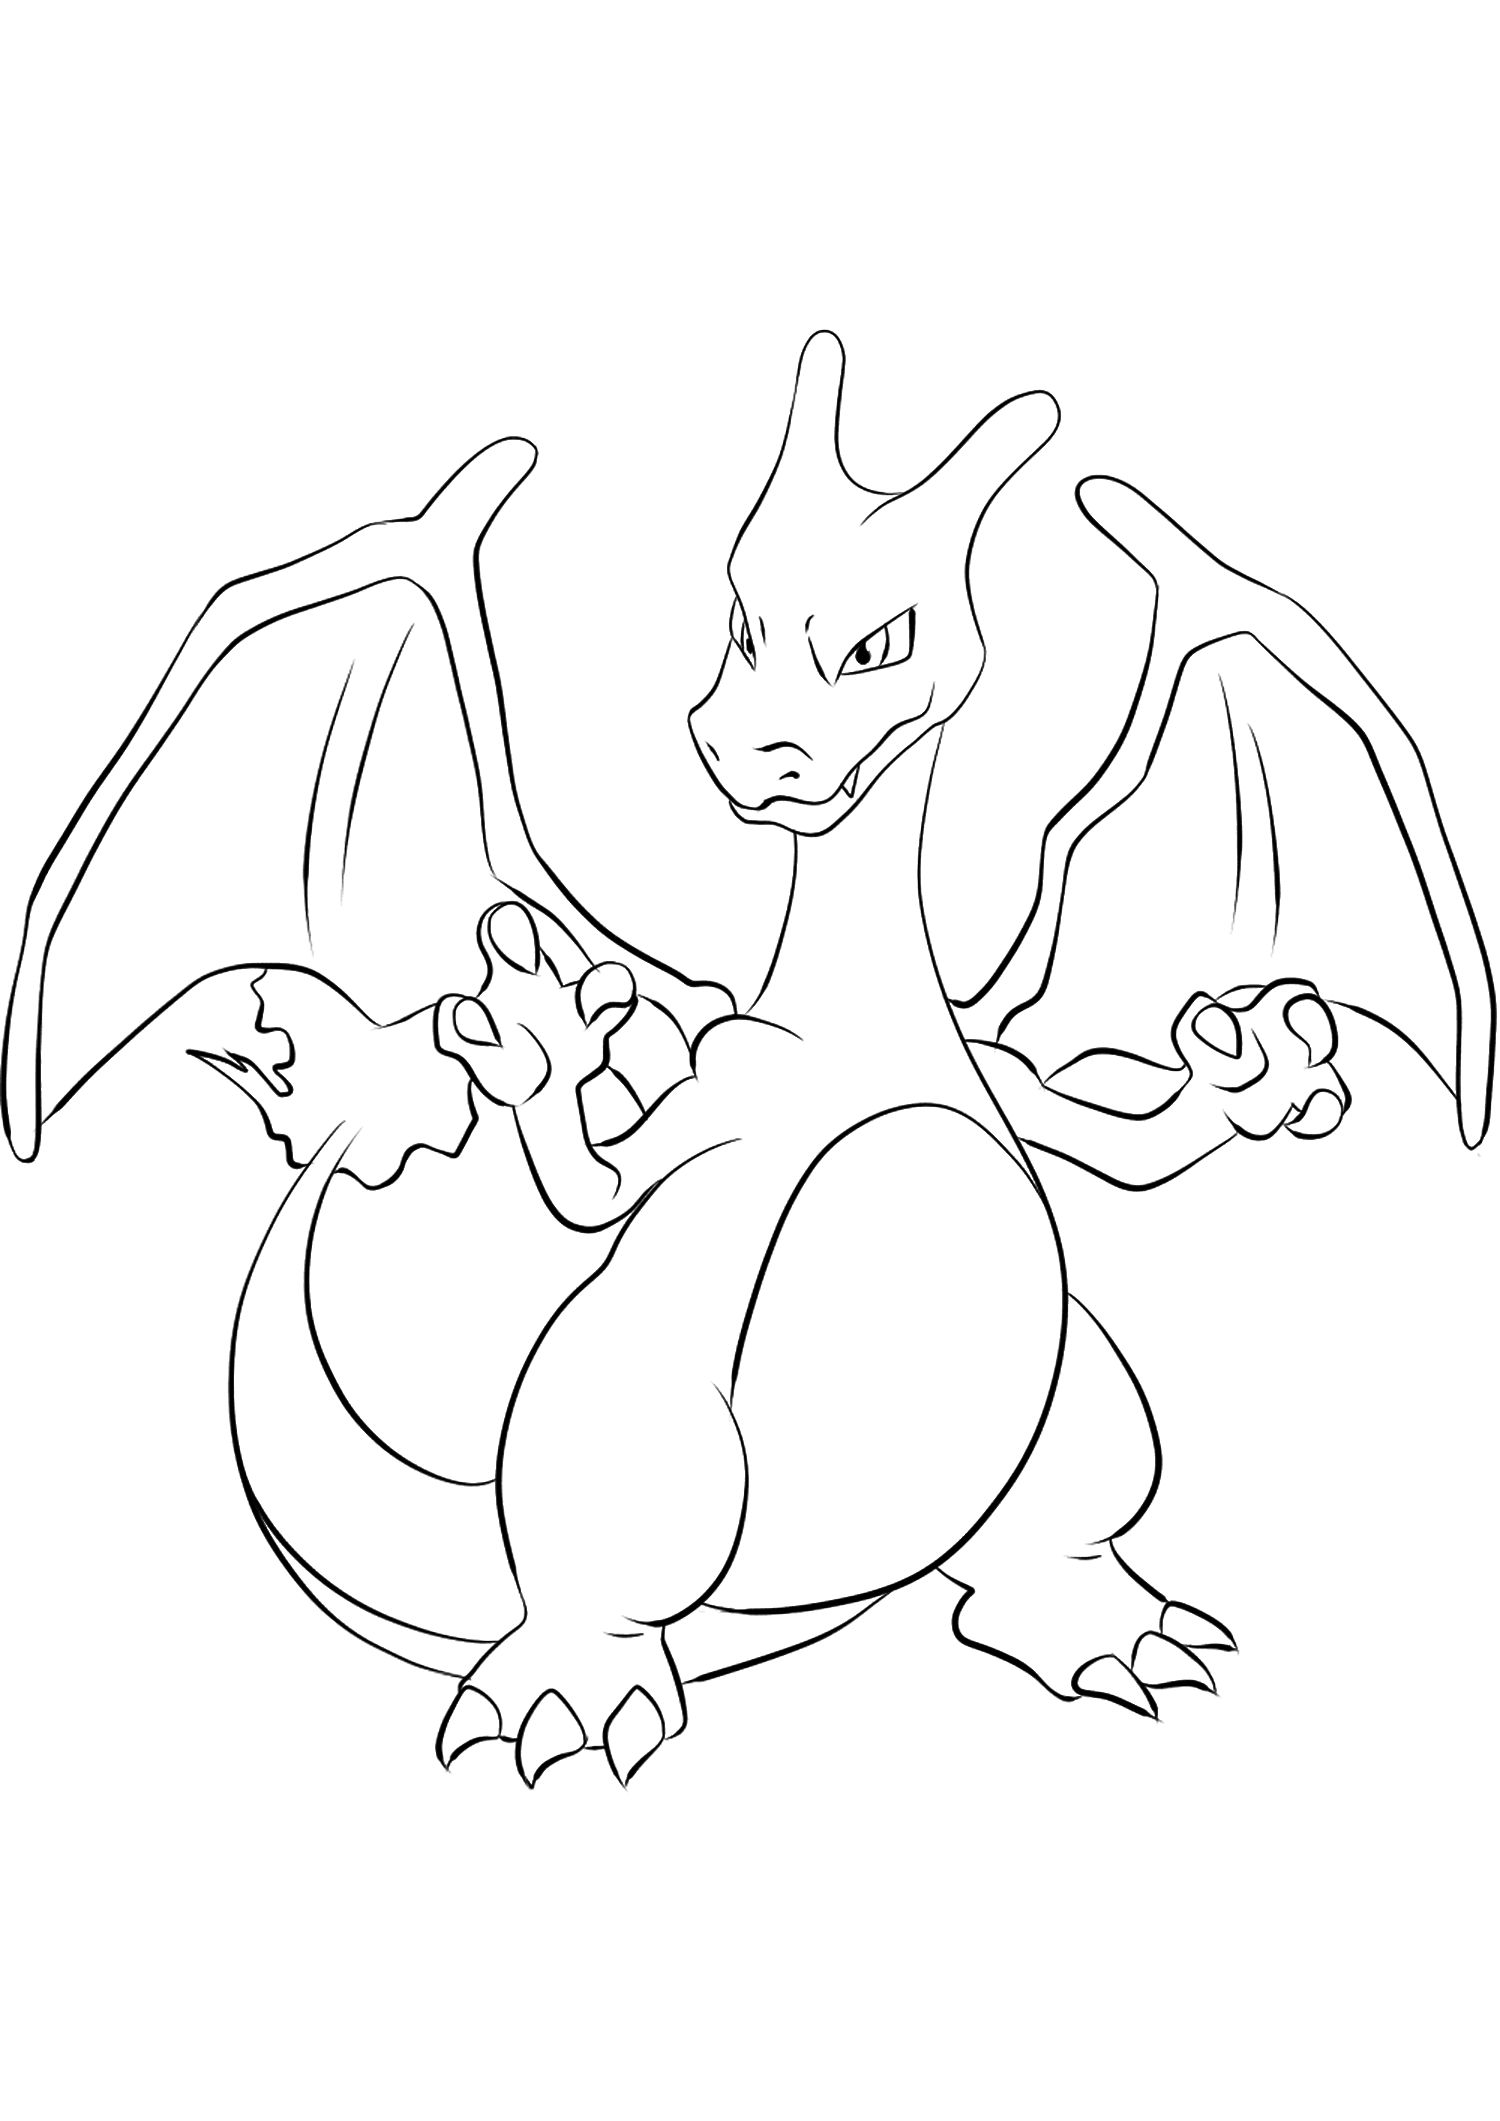 Charizard No 06 Pokemon Generation I All Pokemon Coloring Pages